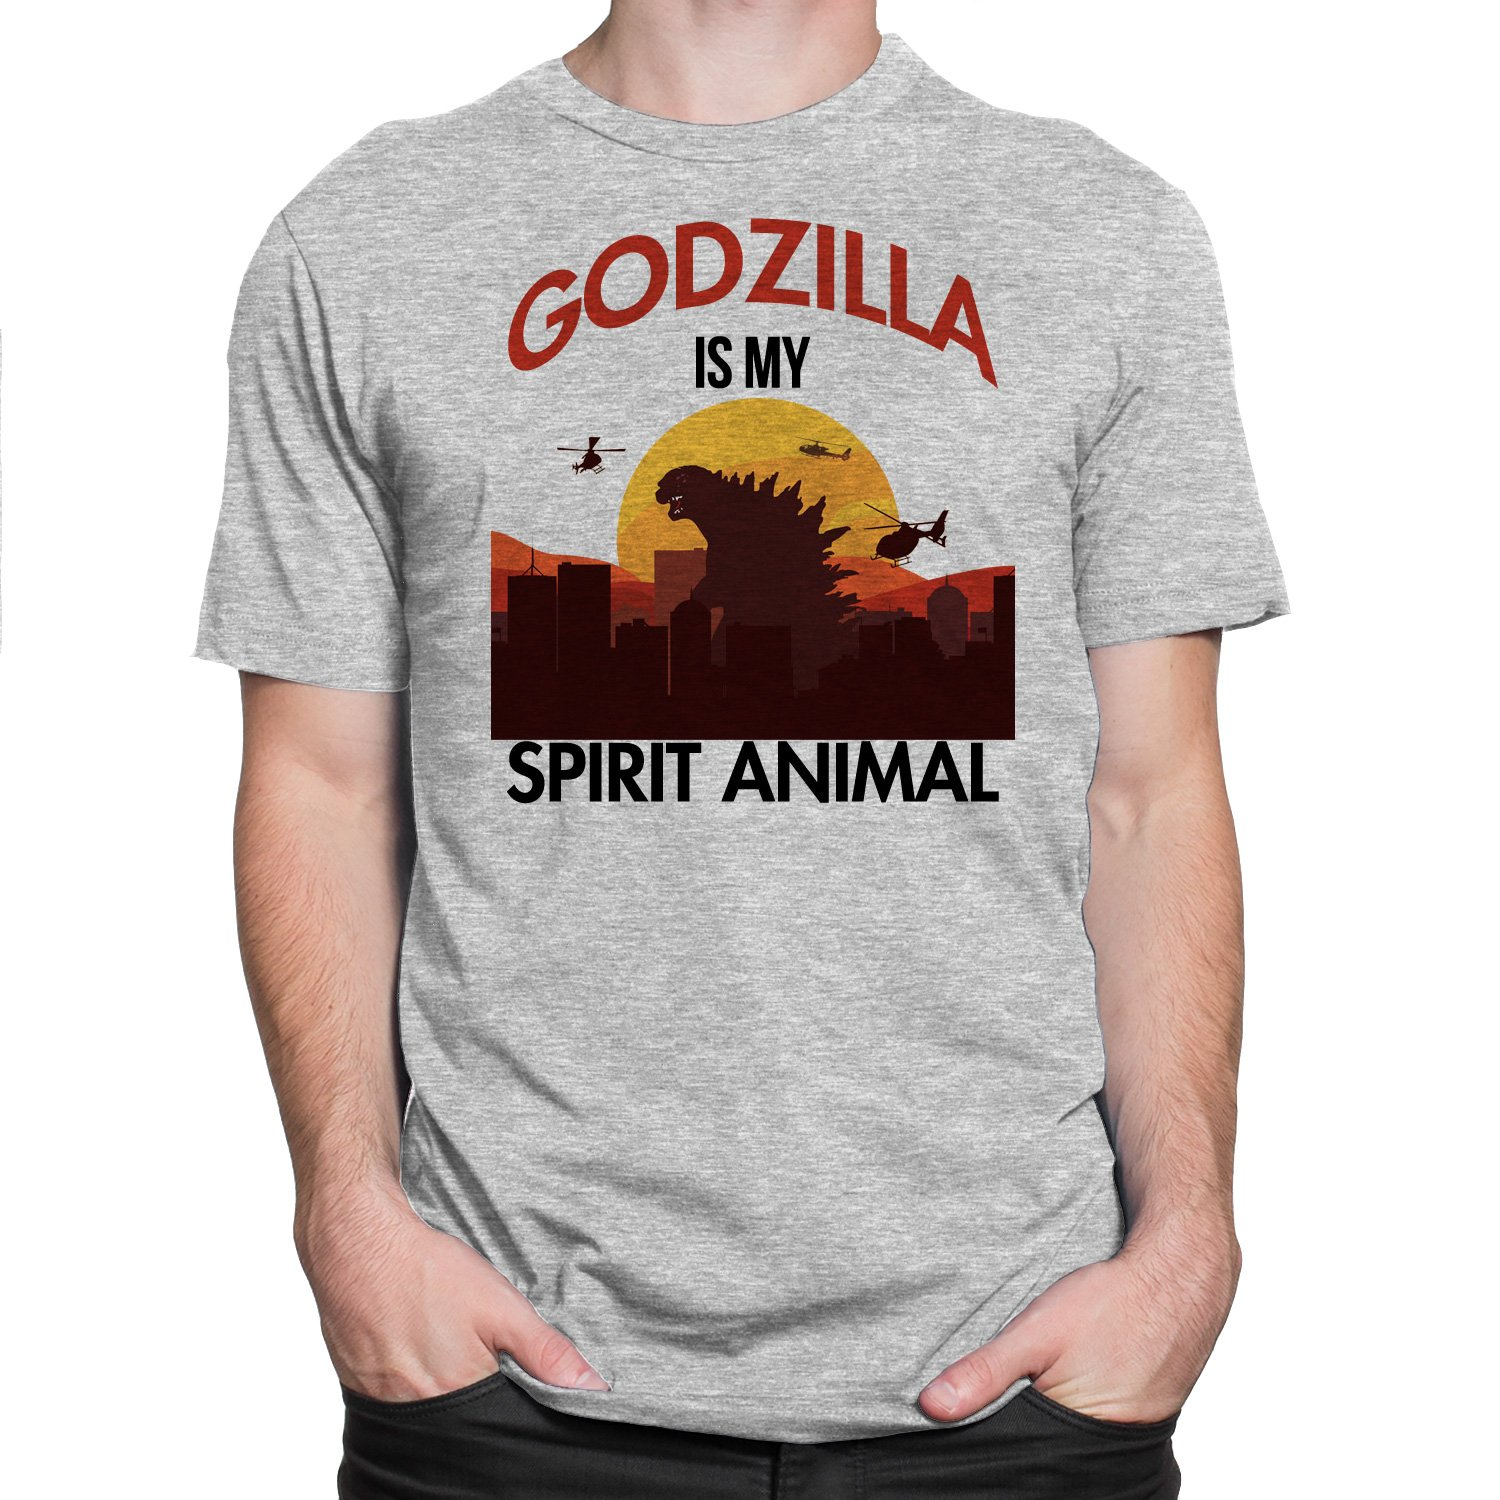 c41d3a6d Godzilla Is My Spirit Animal Mens Tee Graphic T-shirt White,Grey Casual  S-3XL Apparel